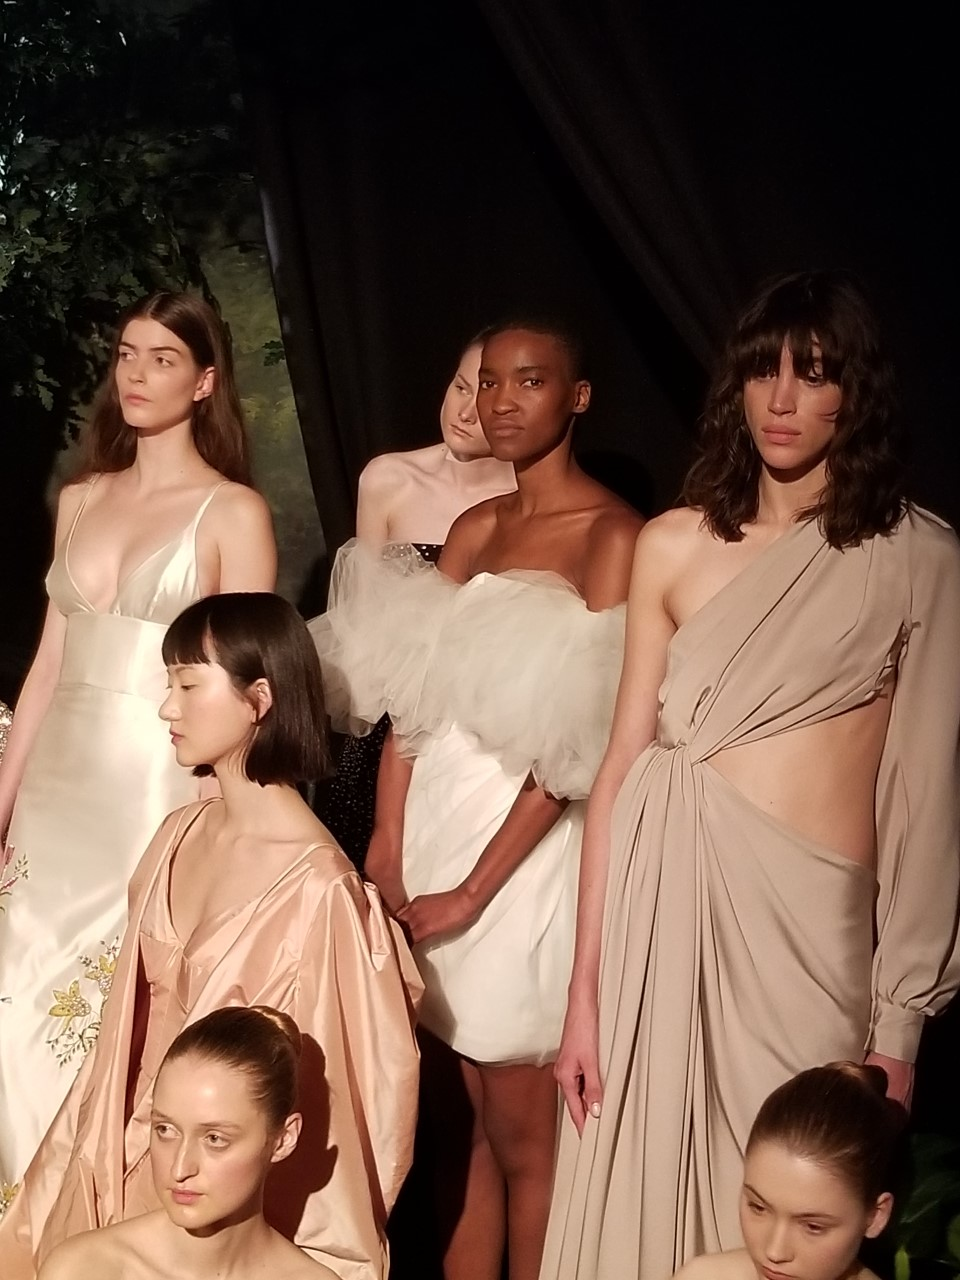 Ahmed alkhyeli aw19 collection (7)